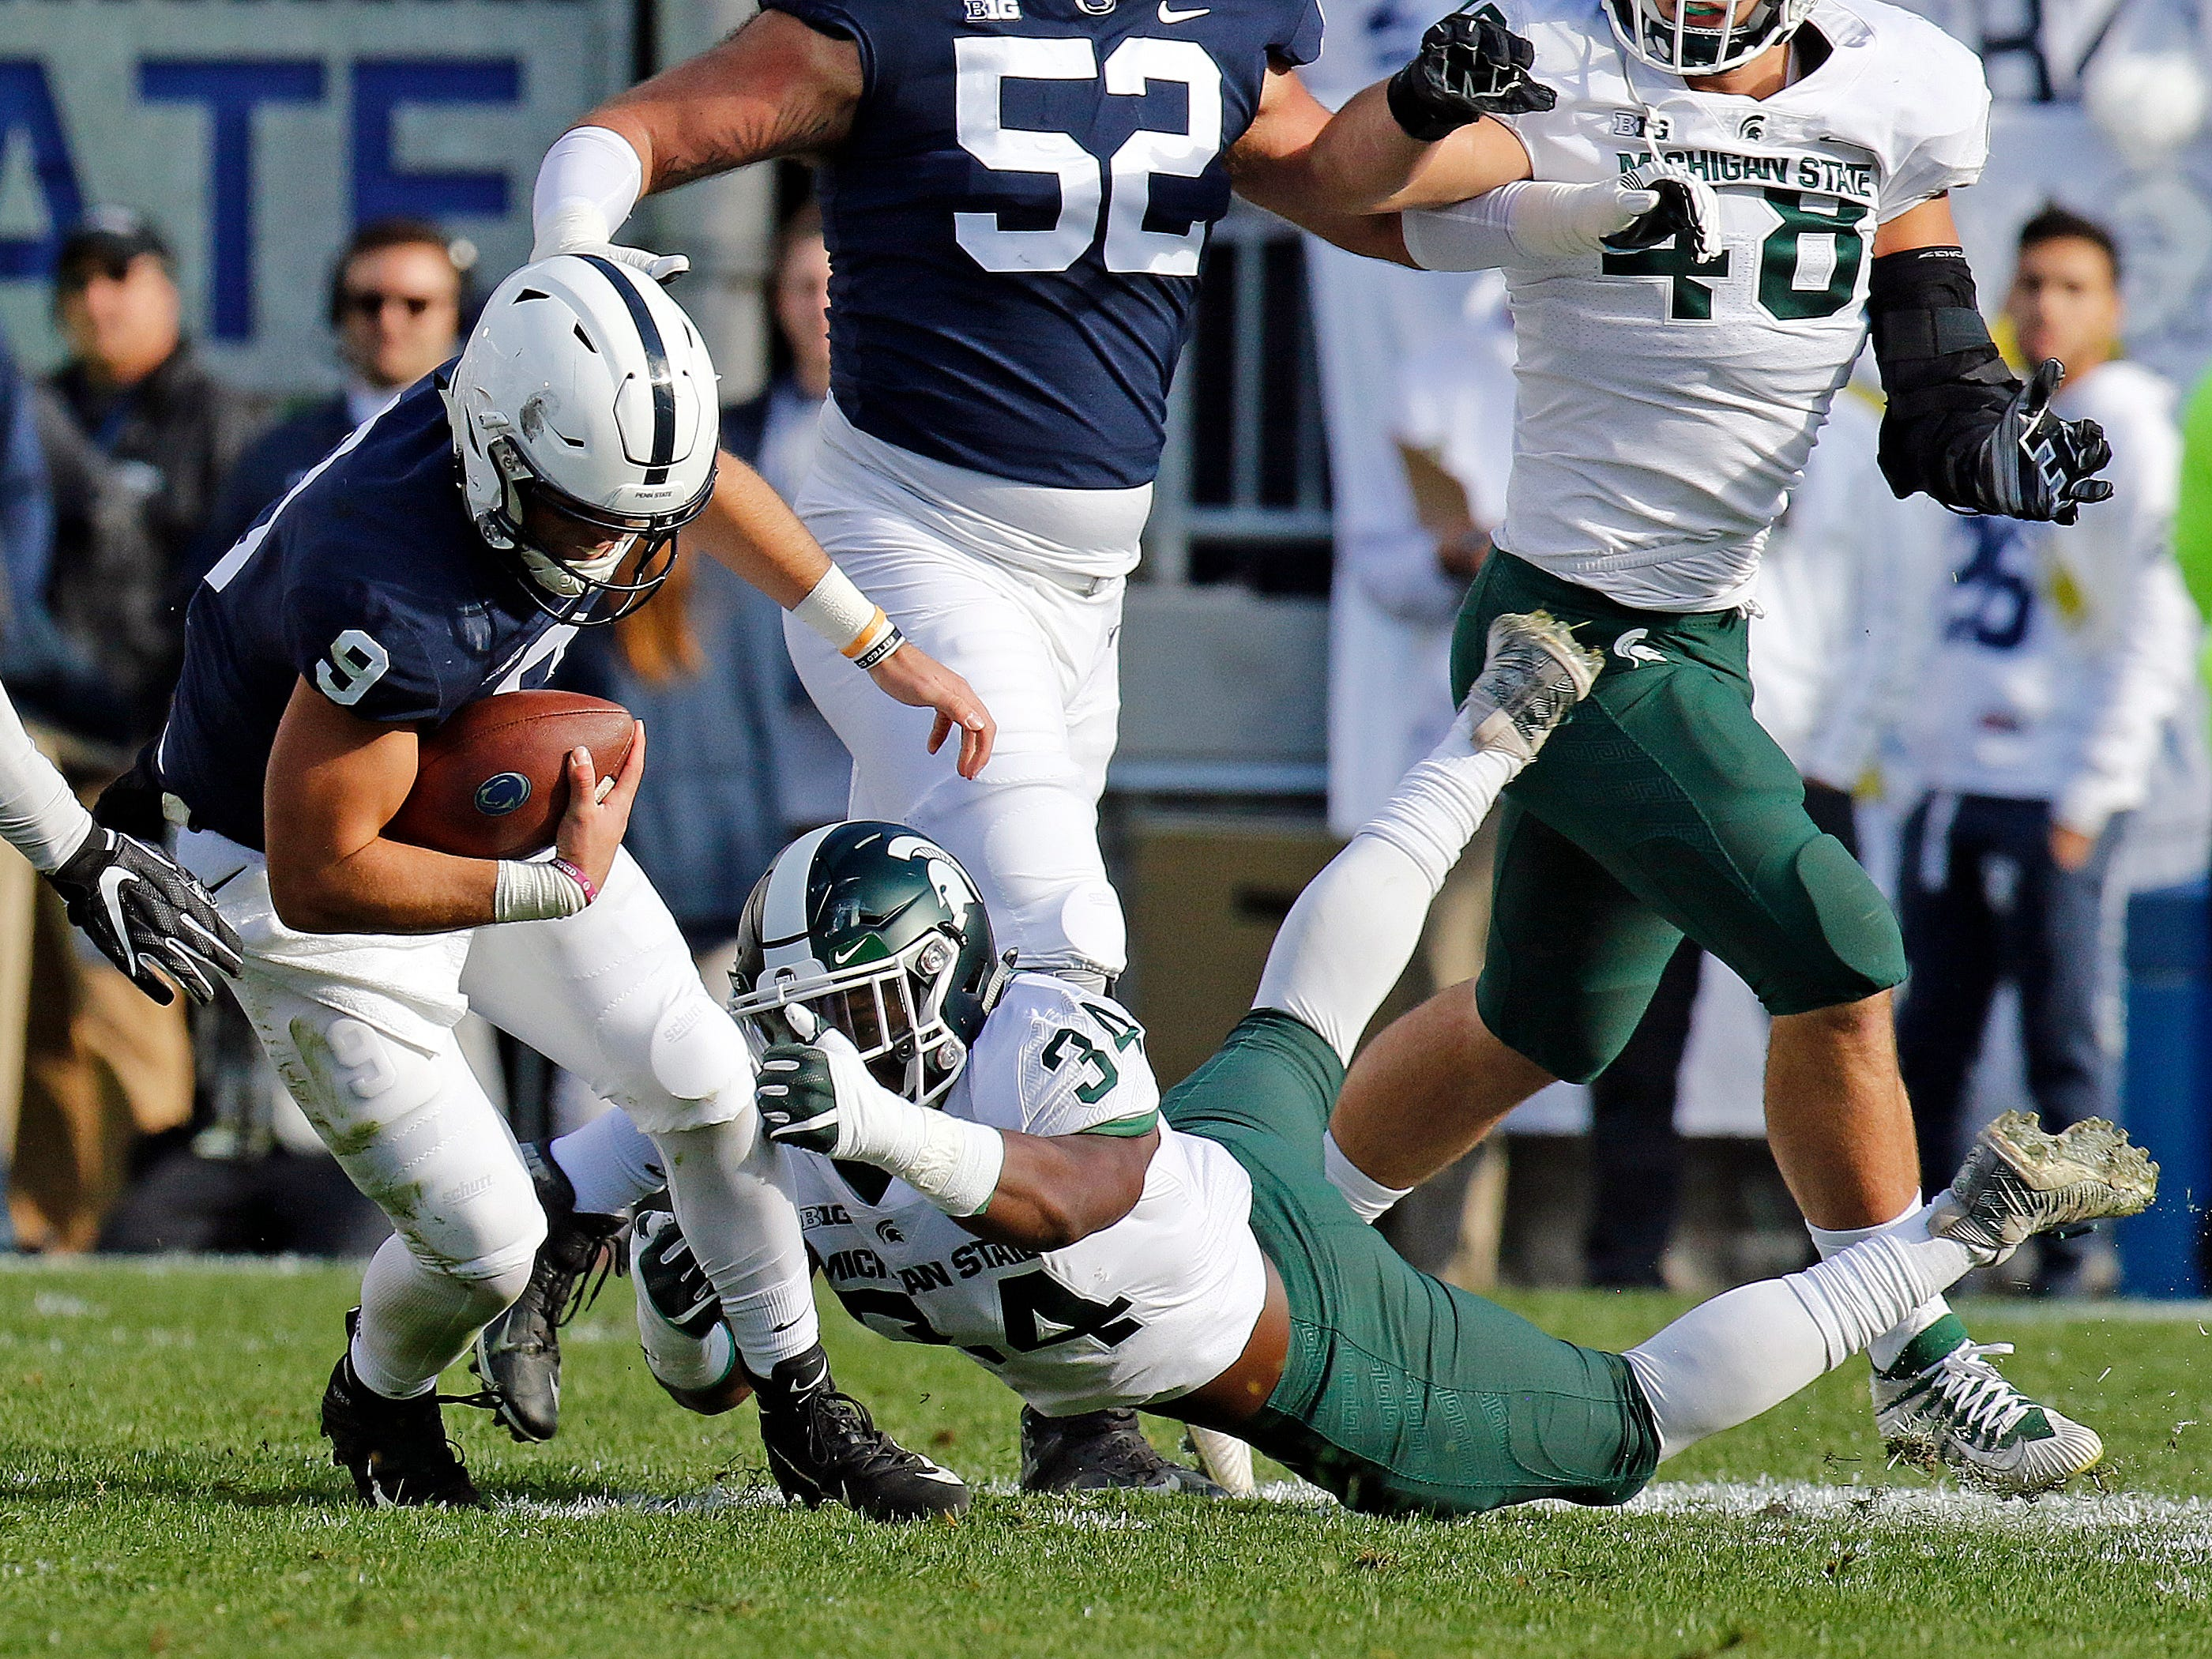 STATE COLLEGE, PA - OCTOBER 13:  Antjuan Simmons #34 of the Michigan State Spartans tackles Trace McSorley #9 of the Penn State Nittany Lions on October 13, 2018 at Beaver Stadium in State College, Pennsylvania.  (Photo by Justin K. Aller/Getty Images)